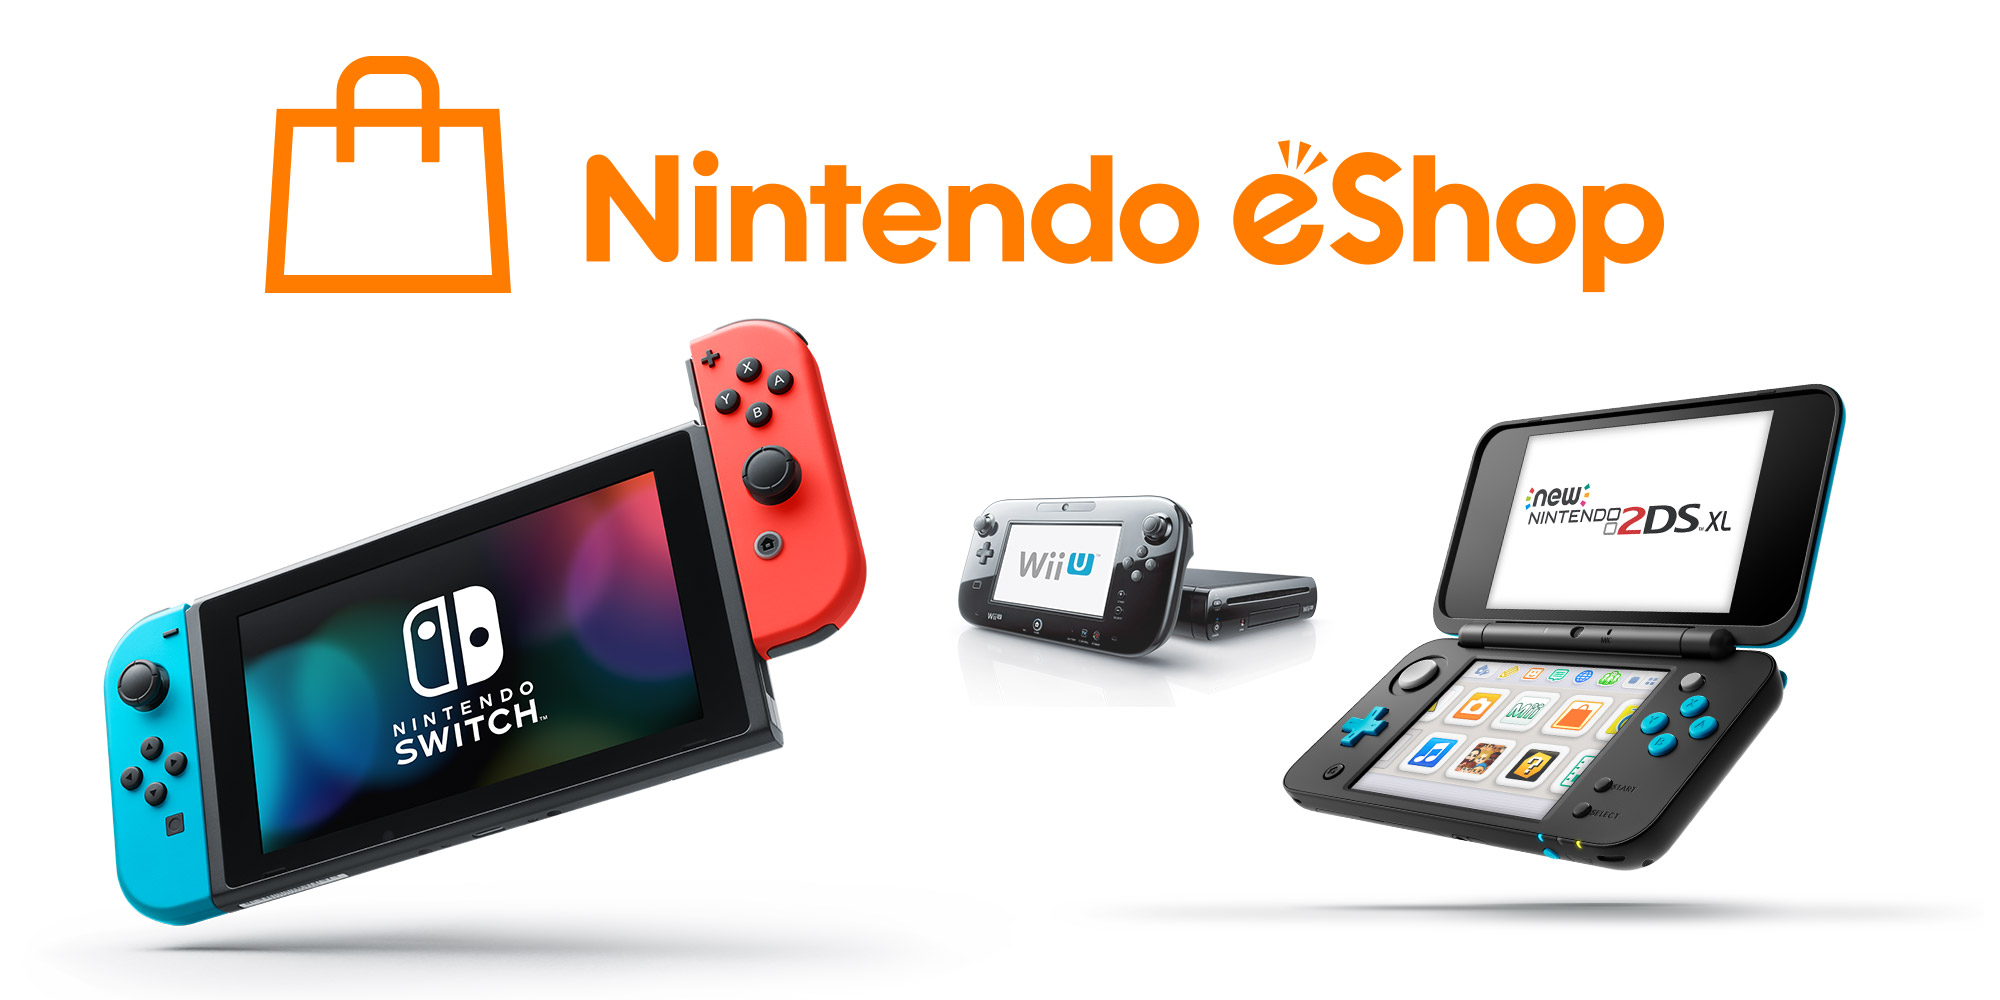 Nintendo Eshop Nintendo Switch Nintendo 3ds And Wii U Misc